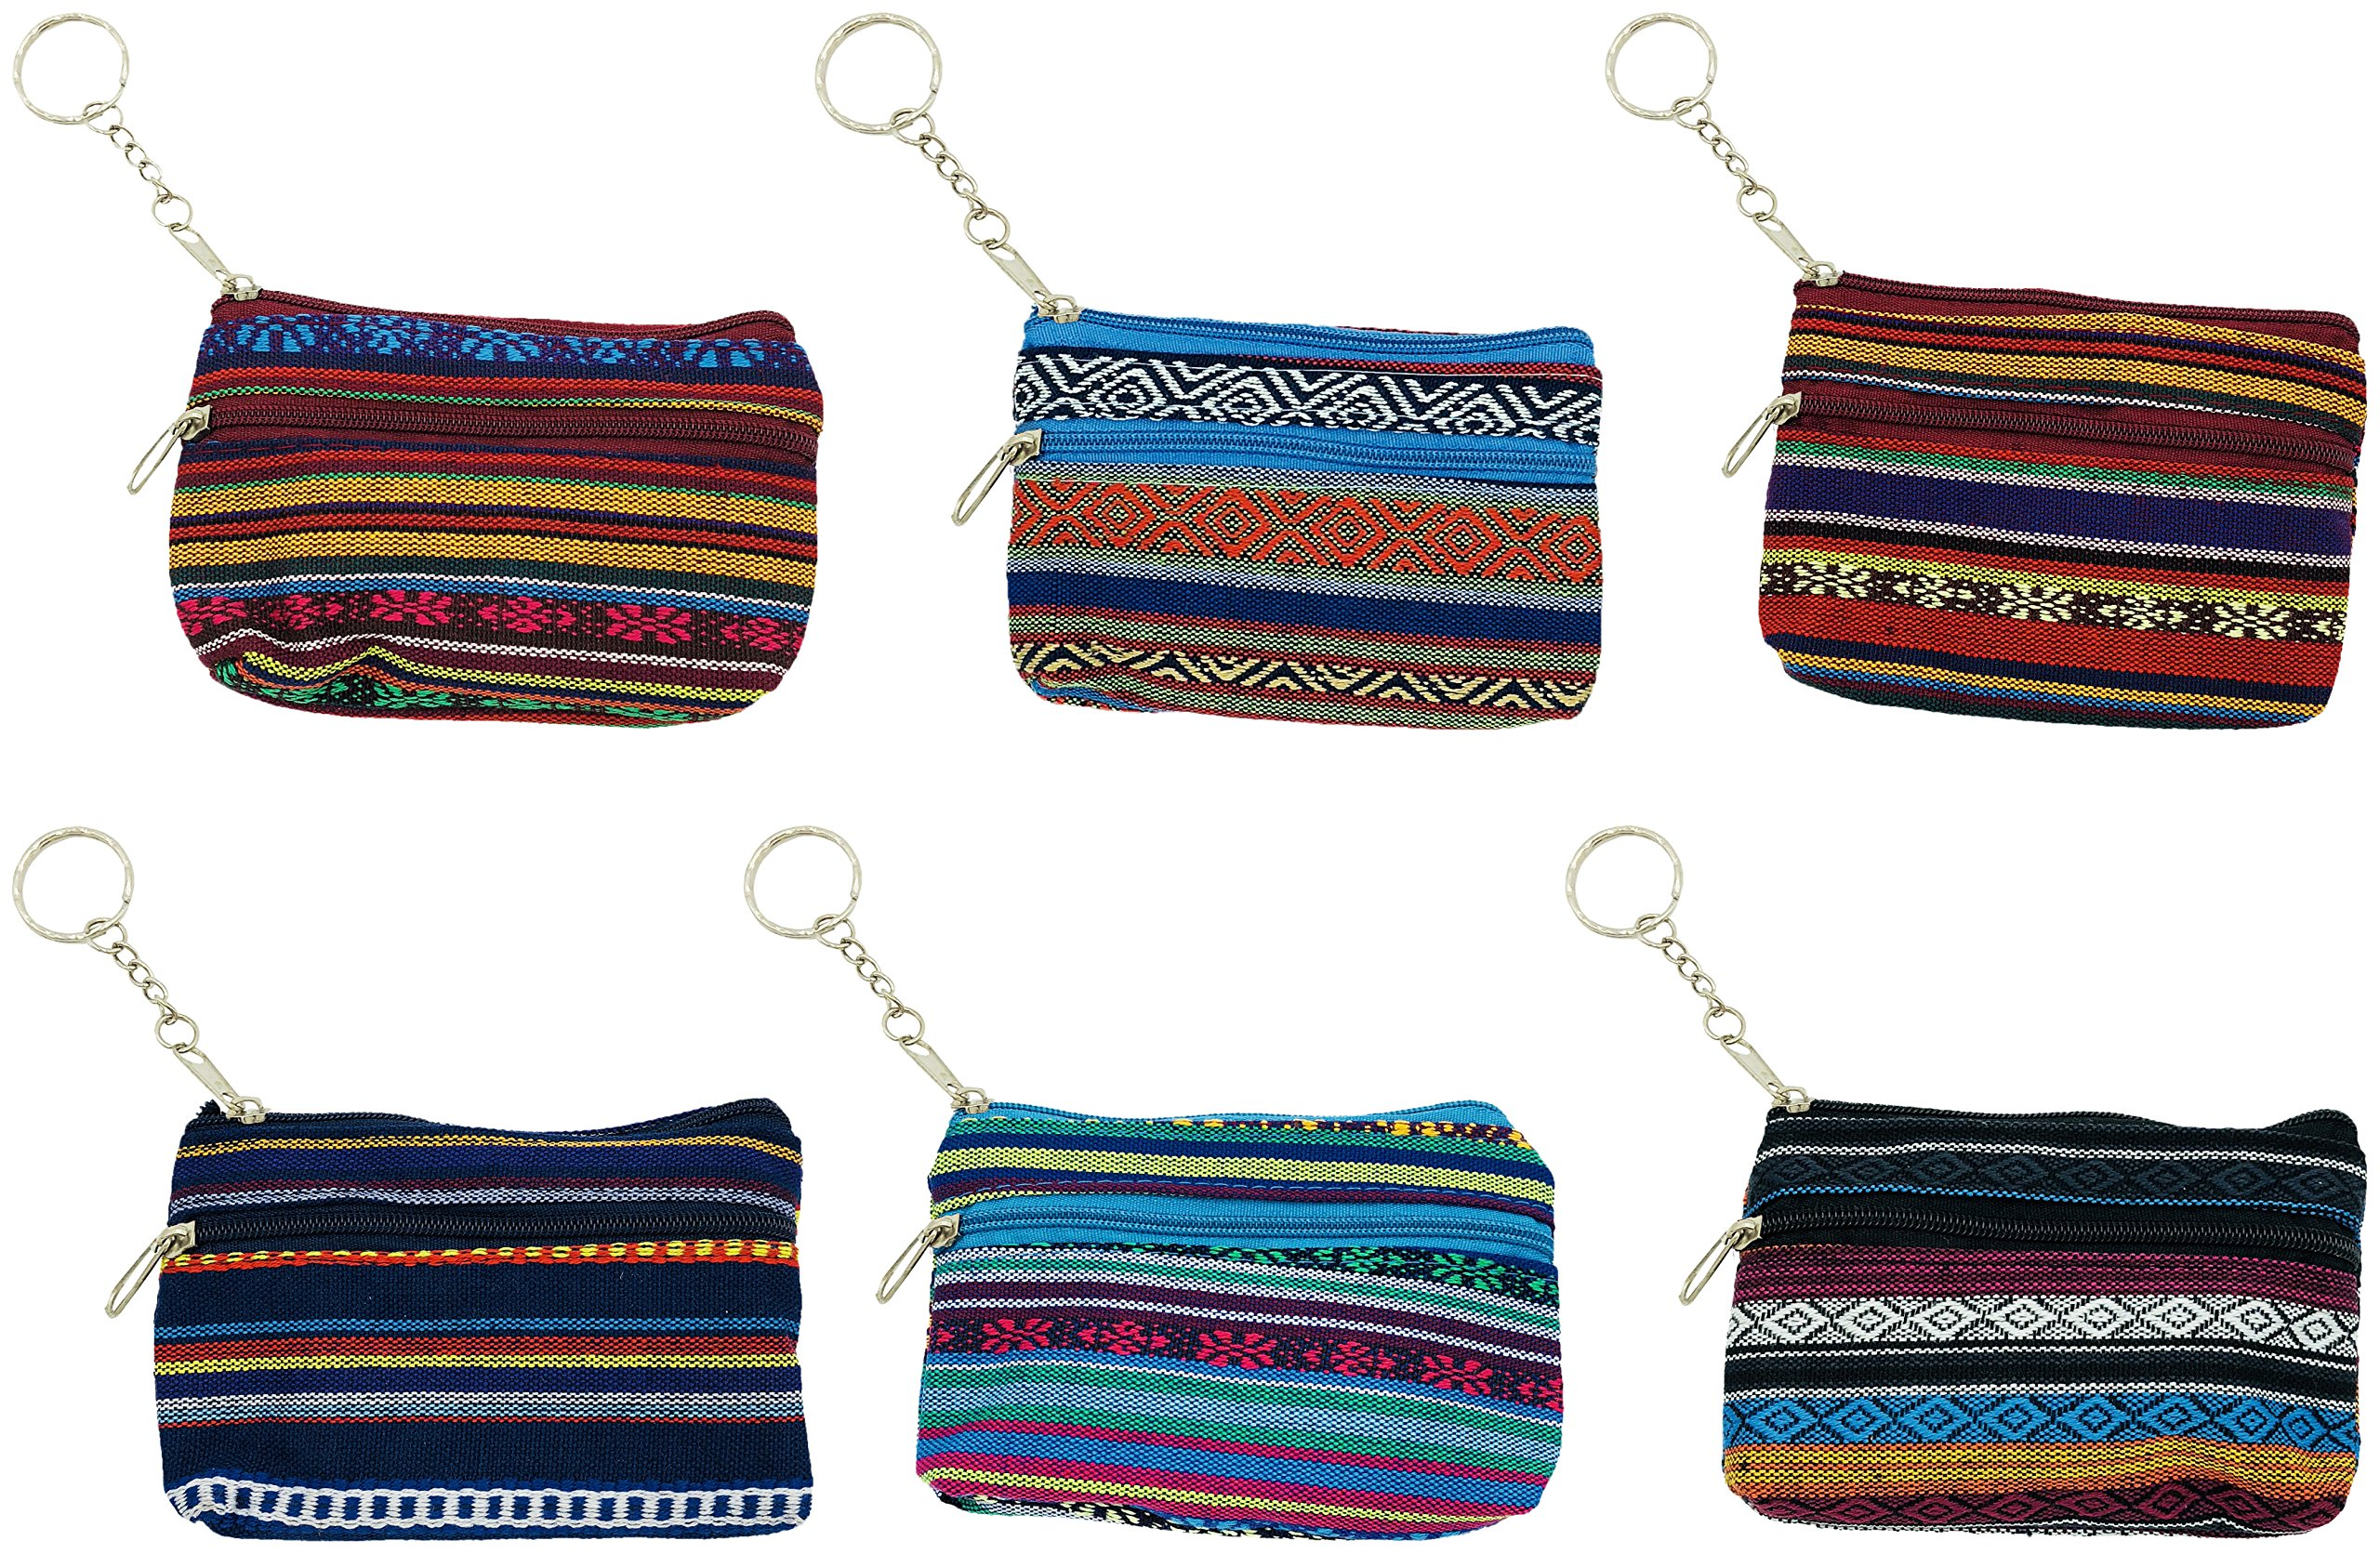 6 Pack Coin Purse, Small Zippered Keychain Wallet, Cash Holder Change Pouch for Women Girls Gift (6 Pack, Stripes)